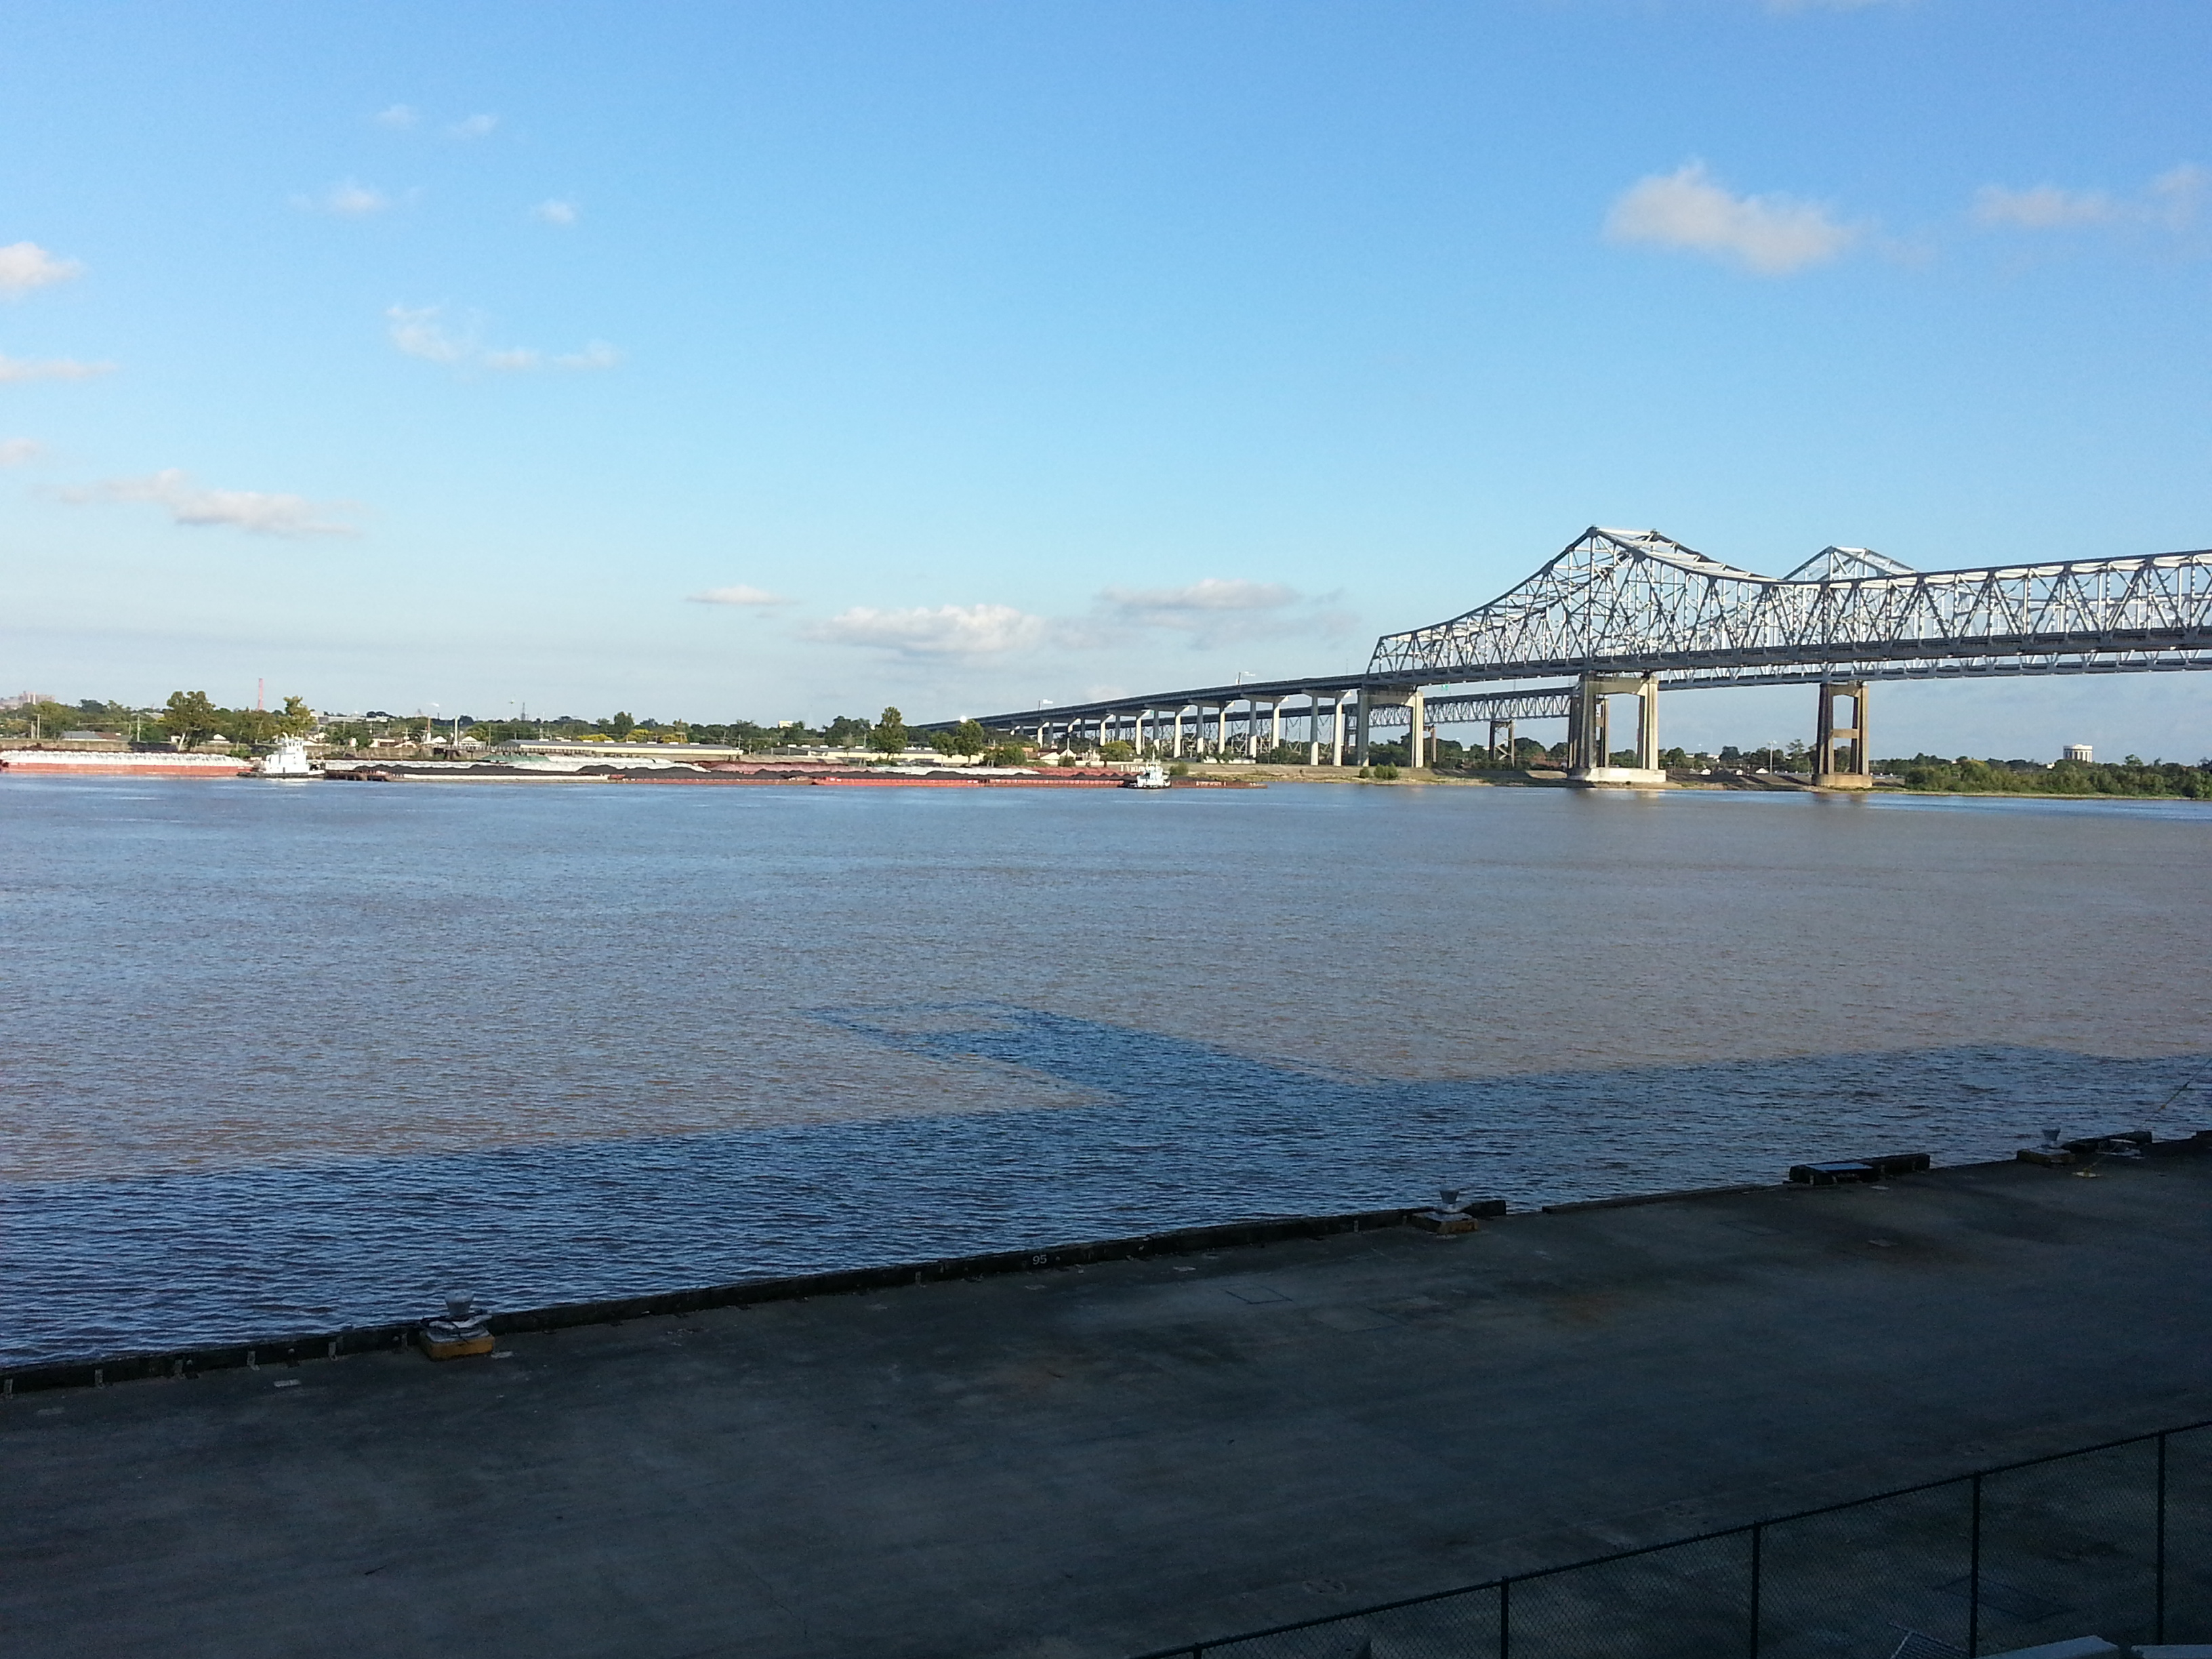 Mississippi River at New Orleans